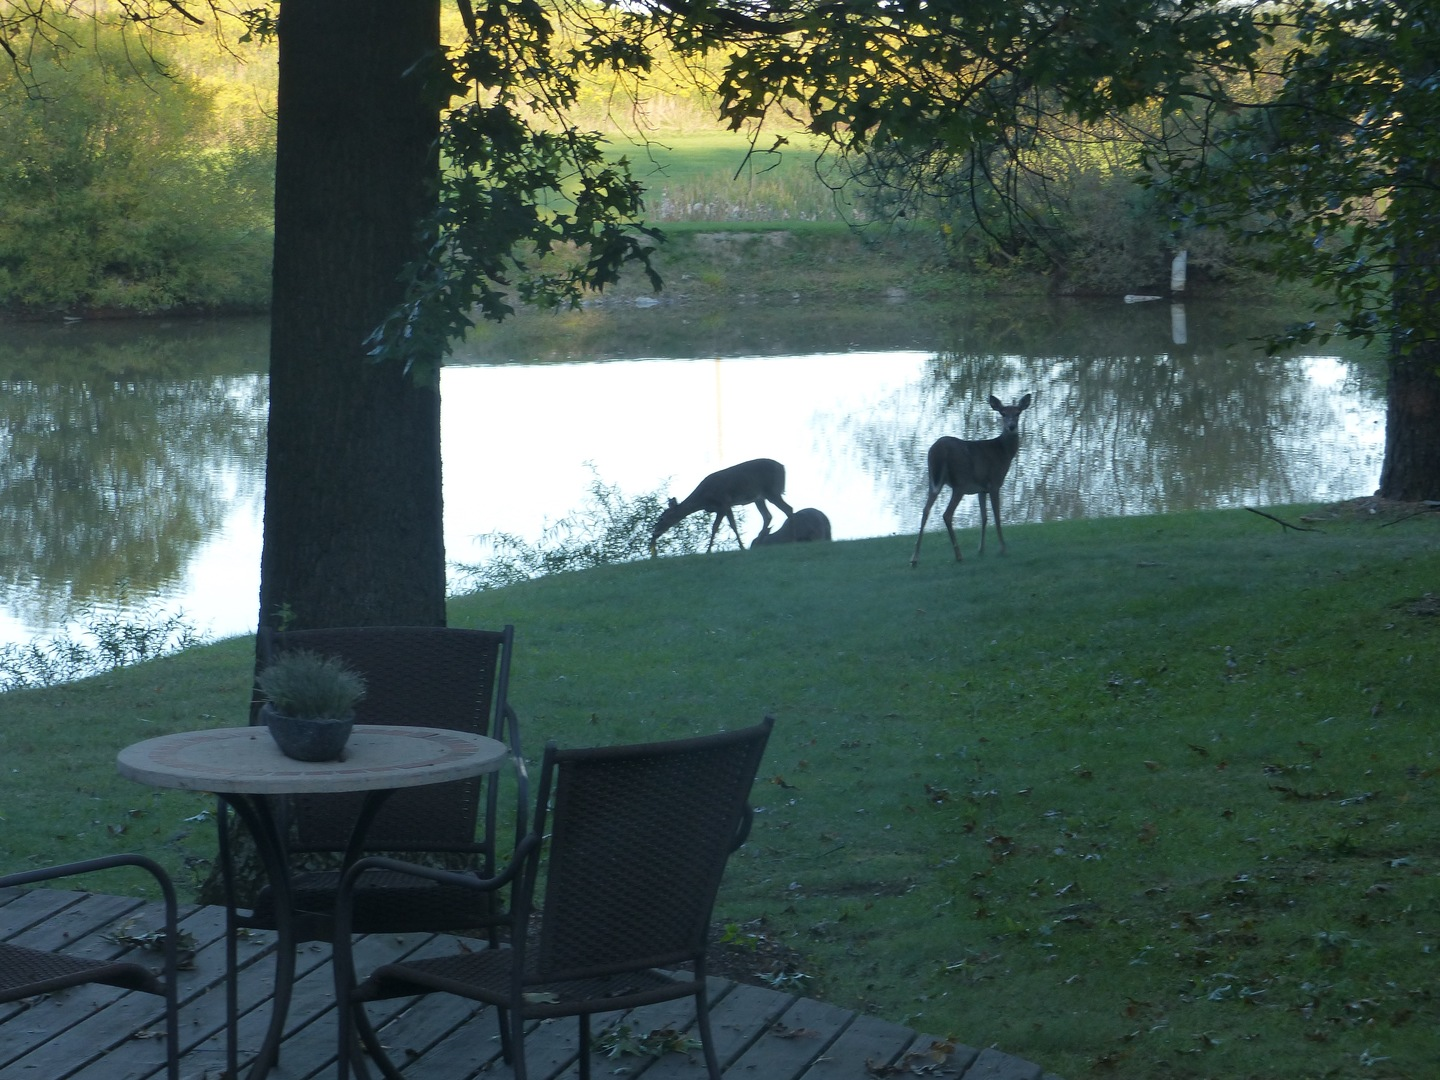 A herd of animals standing on top of a grass covered field at The Inn at White Oak.